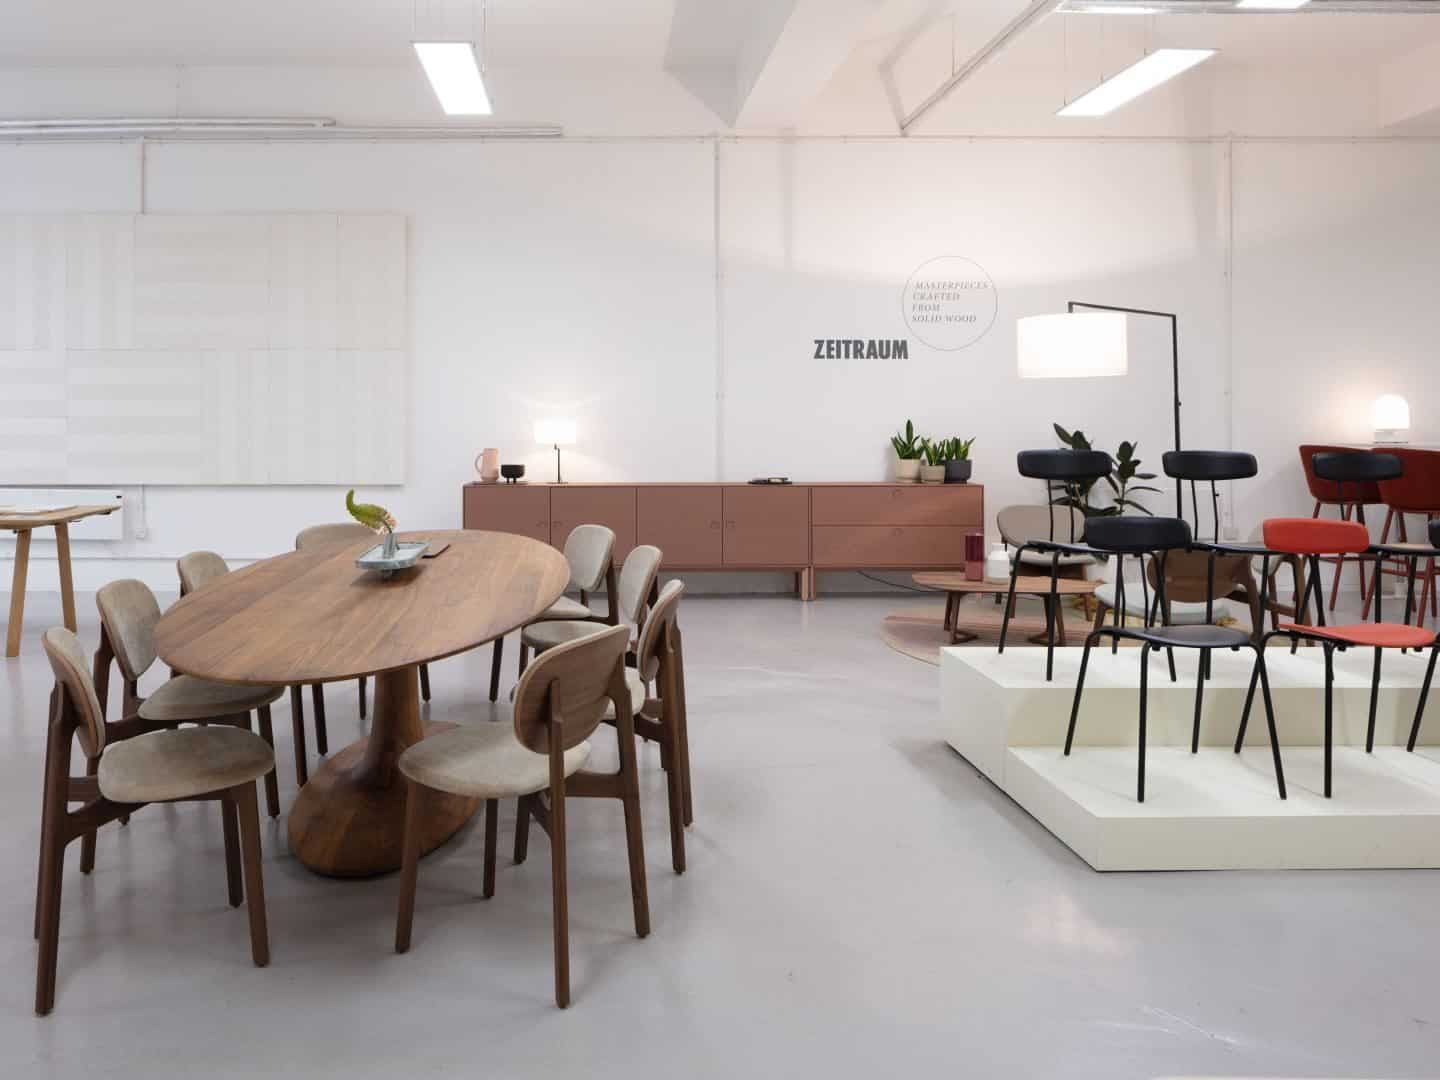 Clerkenwell Design Week 2019 pop-up exhibition by Relay Design Agency featuring Zeitraum